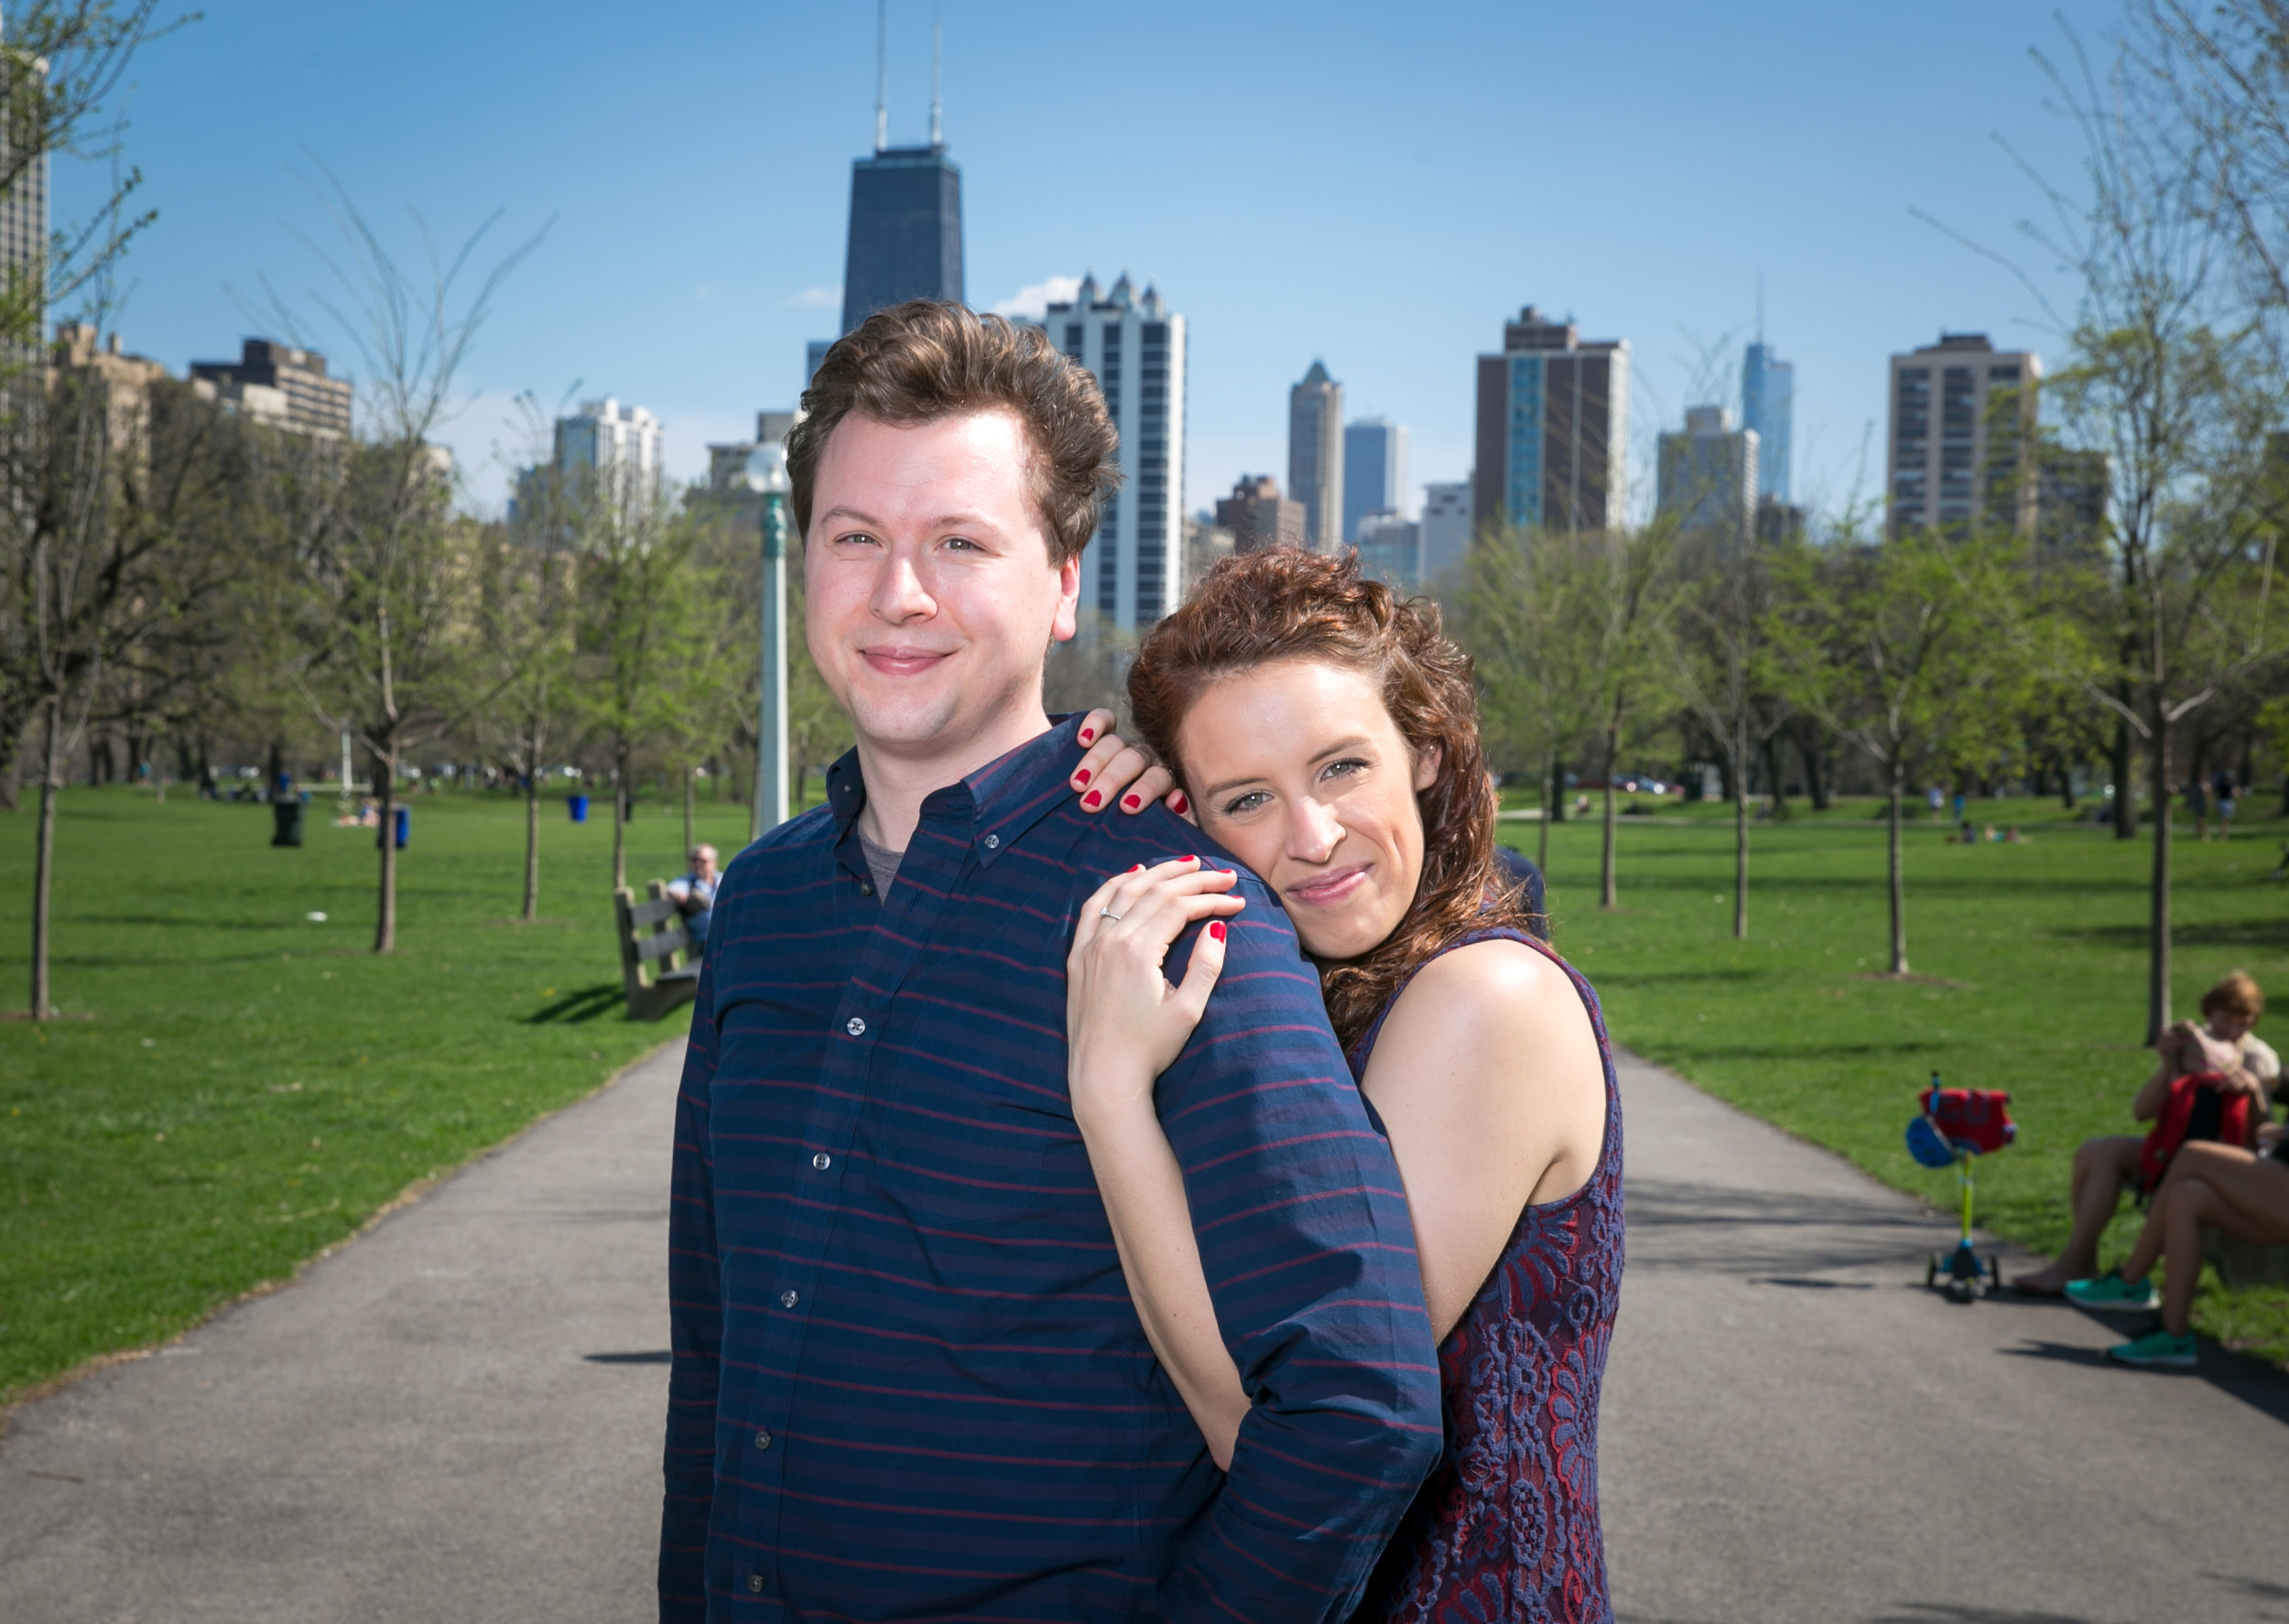 Engagement session with Kristi and Greg in Lincoln Park.